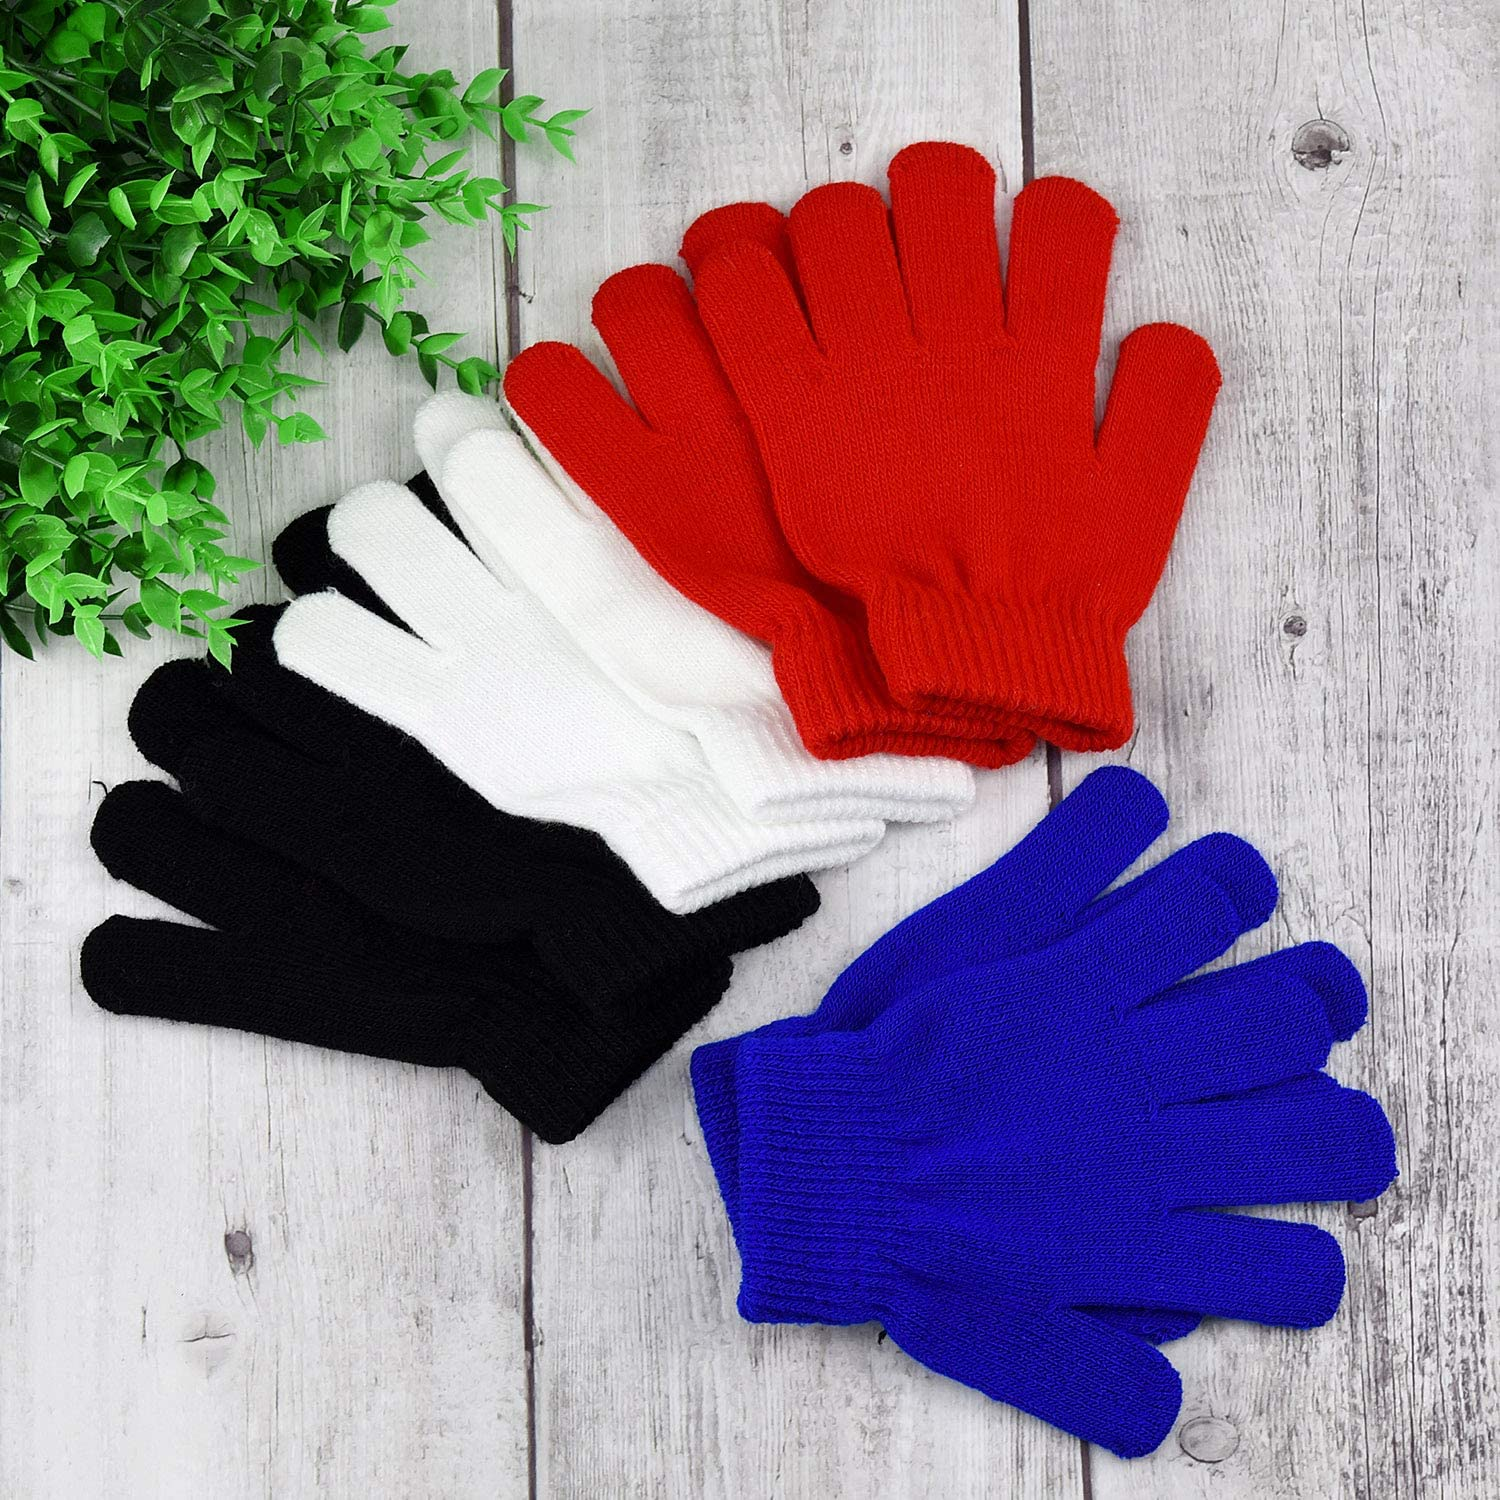 4 Colors MENOLY 4 Pairs Winter Kids Gloves Kids Knit Gloves Warm Stretchy Knitted Magic Gloves Full Fingers Gloves for Little Girls Boys Teens